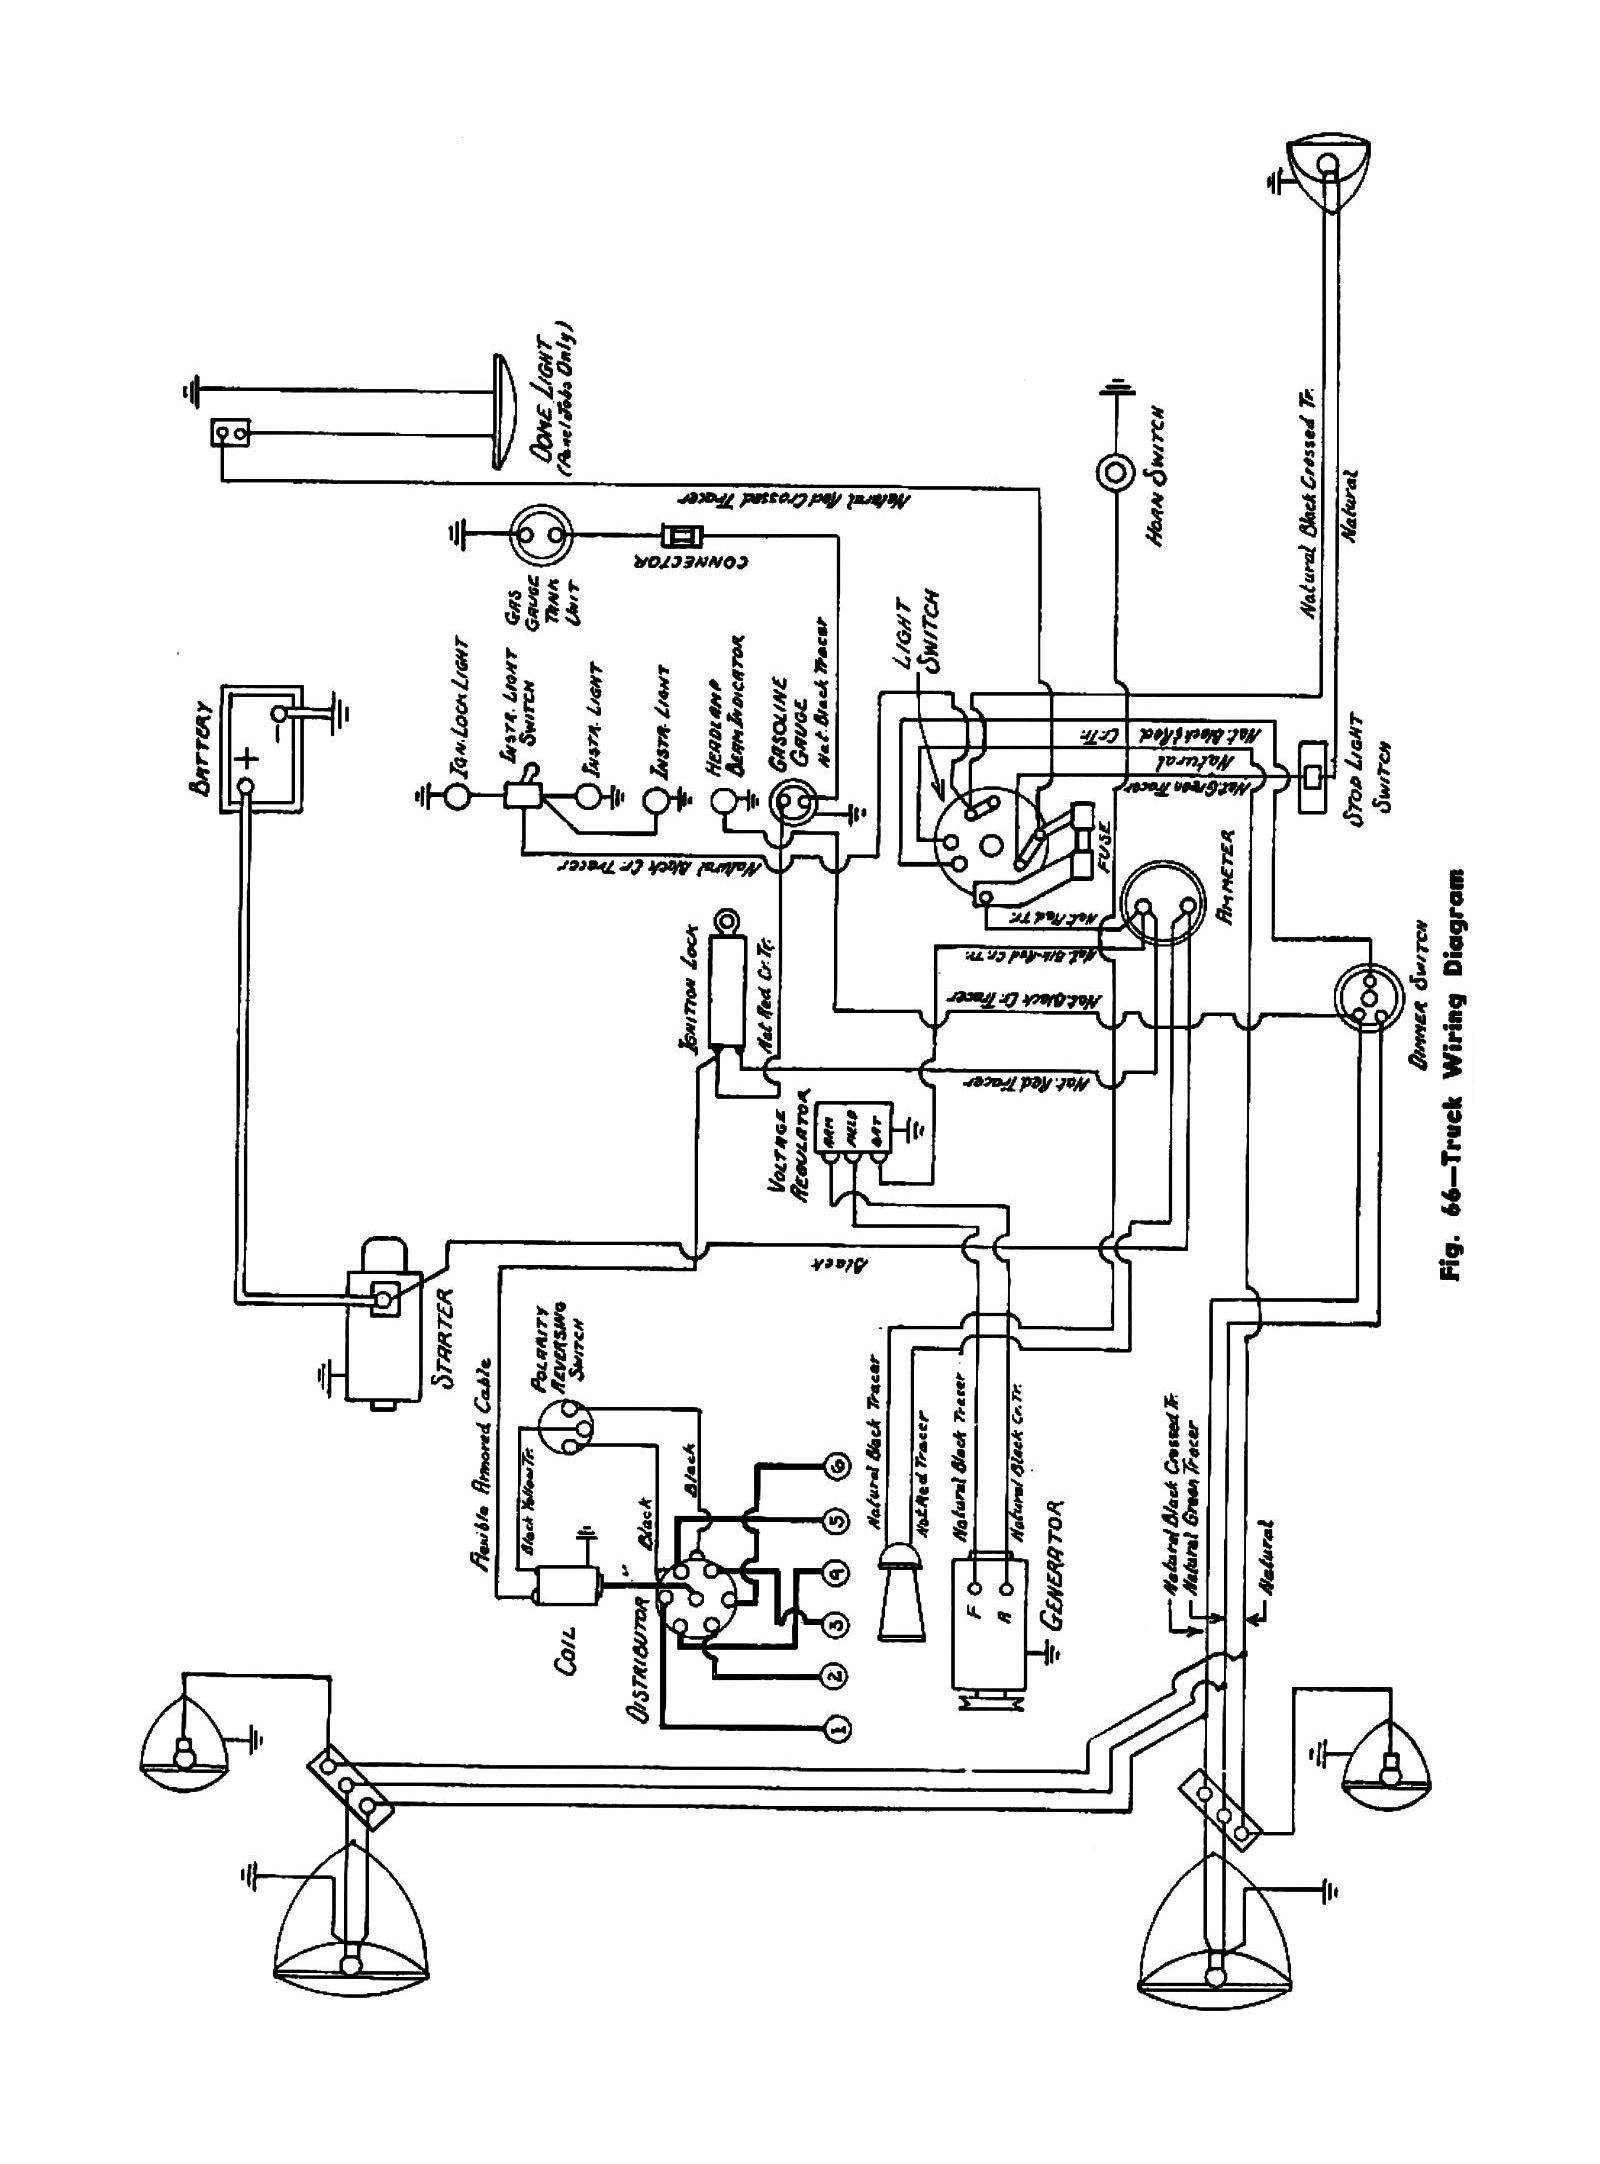 Chevy Wiring Diagrams Diagram As Well Window Air Conditioner On Stop Start 1945 Truck